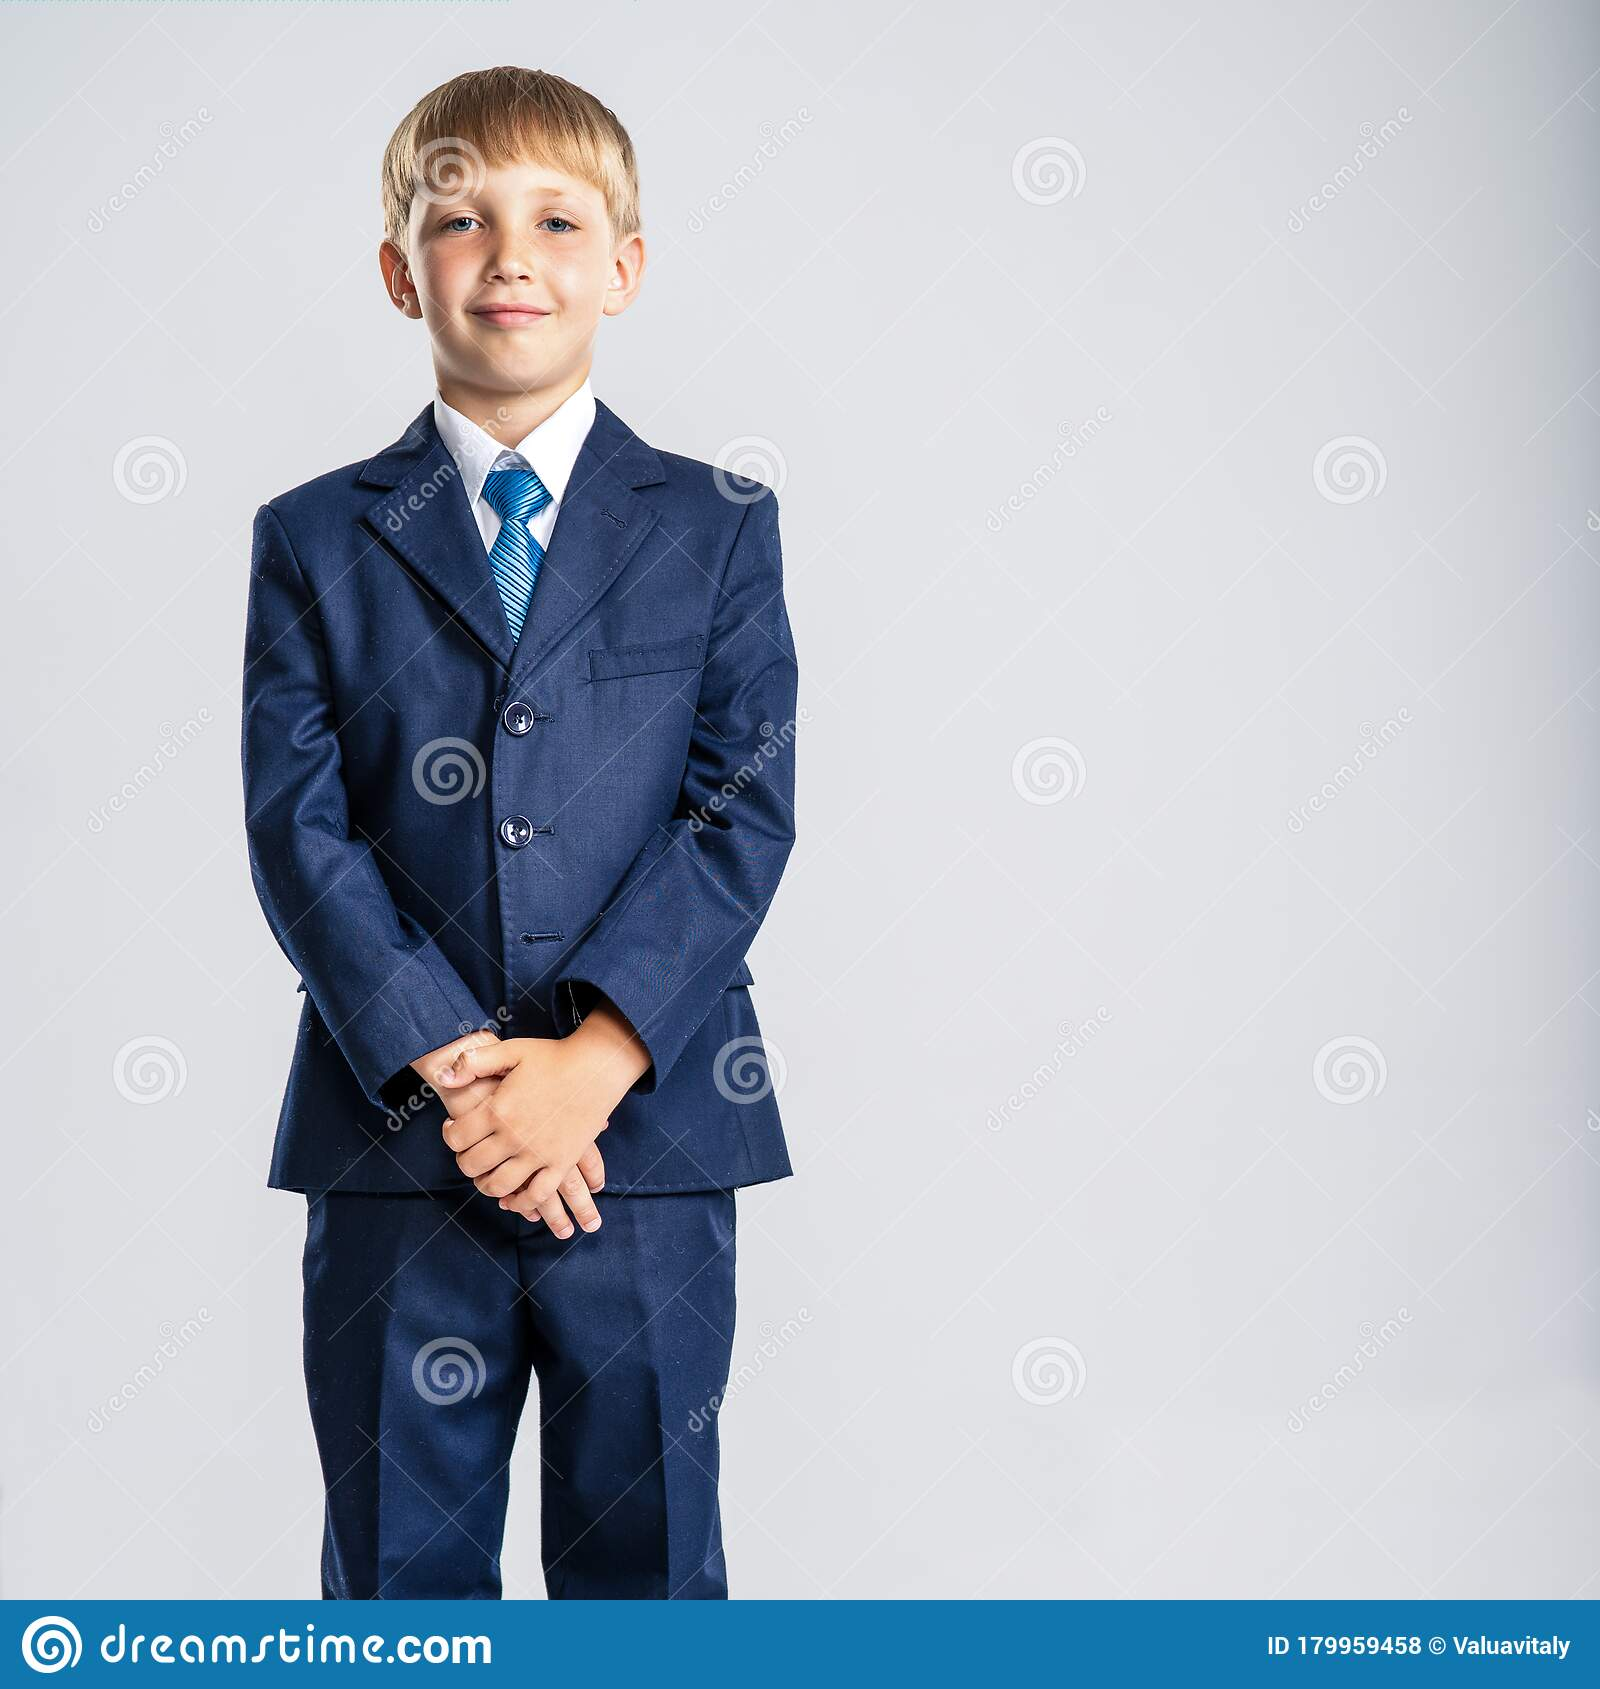 Full Portrait Of White Kid In A Blue Business Suit Posing At Studio Stock Photo Image Of Little People 179959458